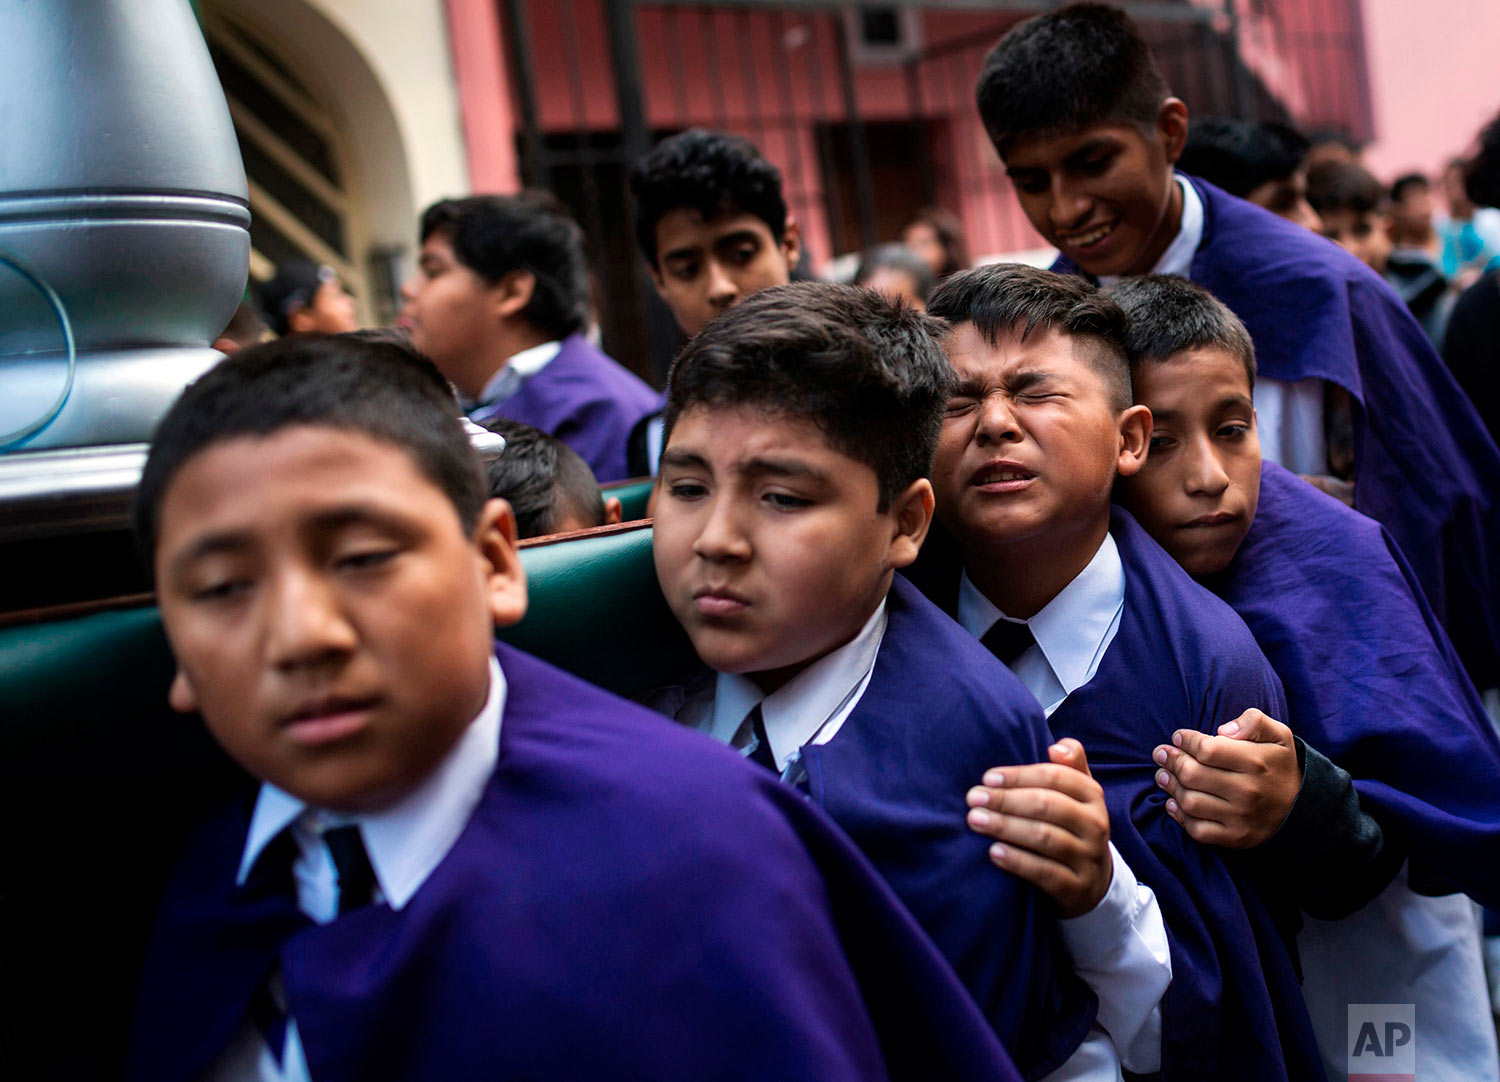 Children carry an image of Jesus Christ while taking part in a Holy Week procession in Lima, Peru, April 1, 2018. Processions take place throughout Peru during the Easter Holy Week. (AP Photo/Rodrigo Abd)